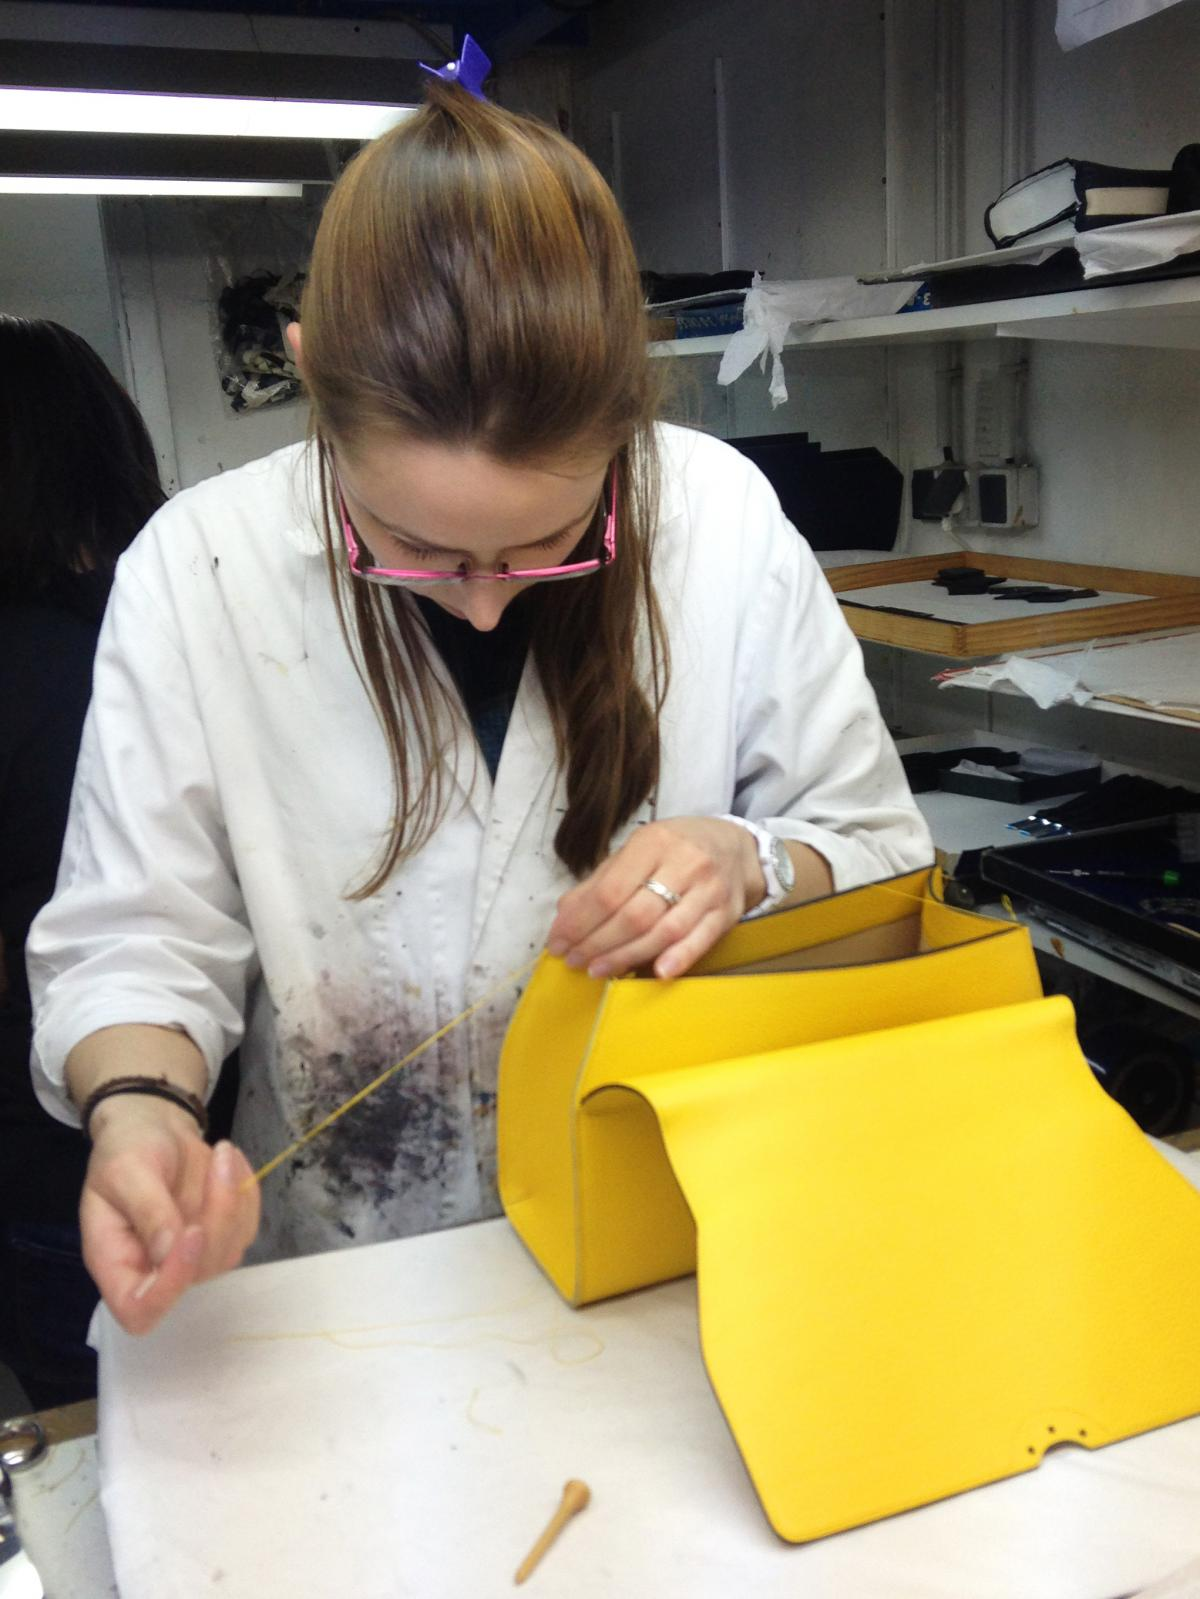 An employee sews a Moynat handbag in an atelier above the company's boutique.